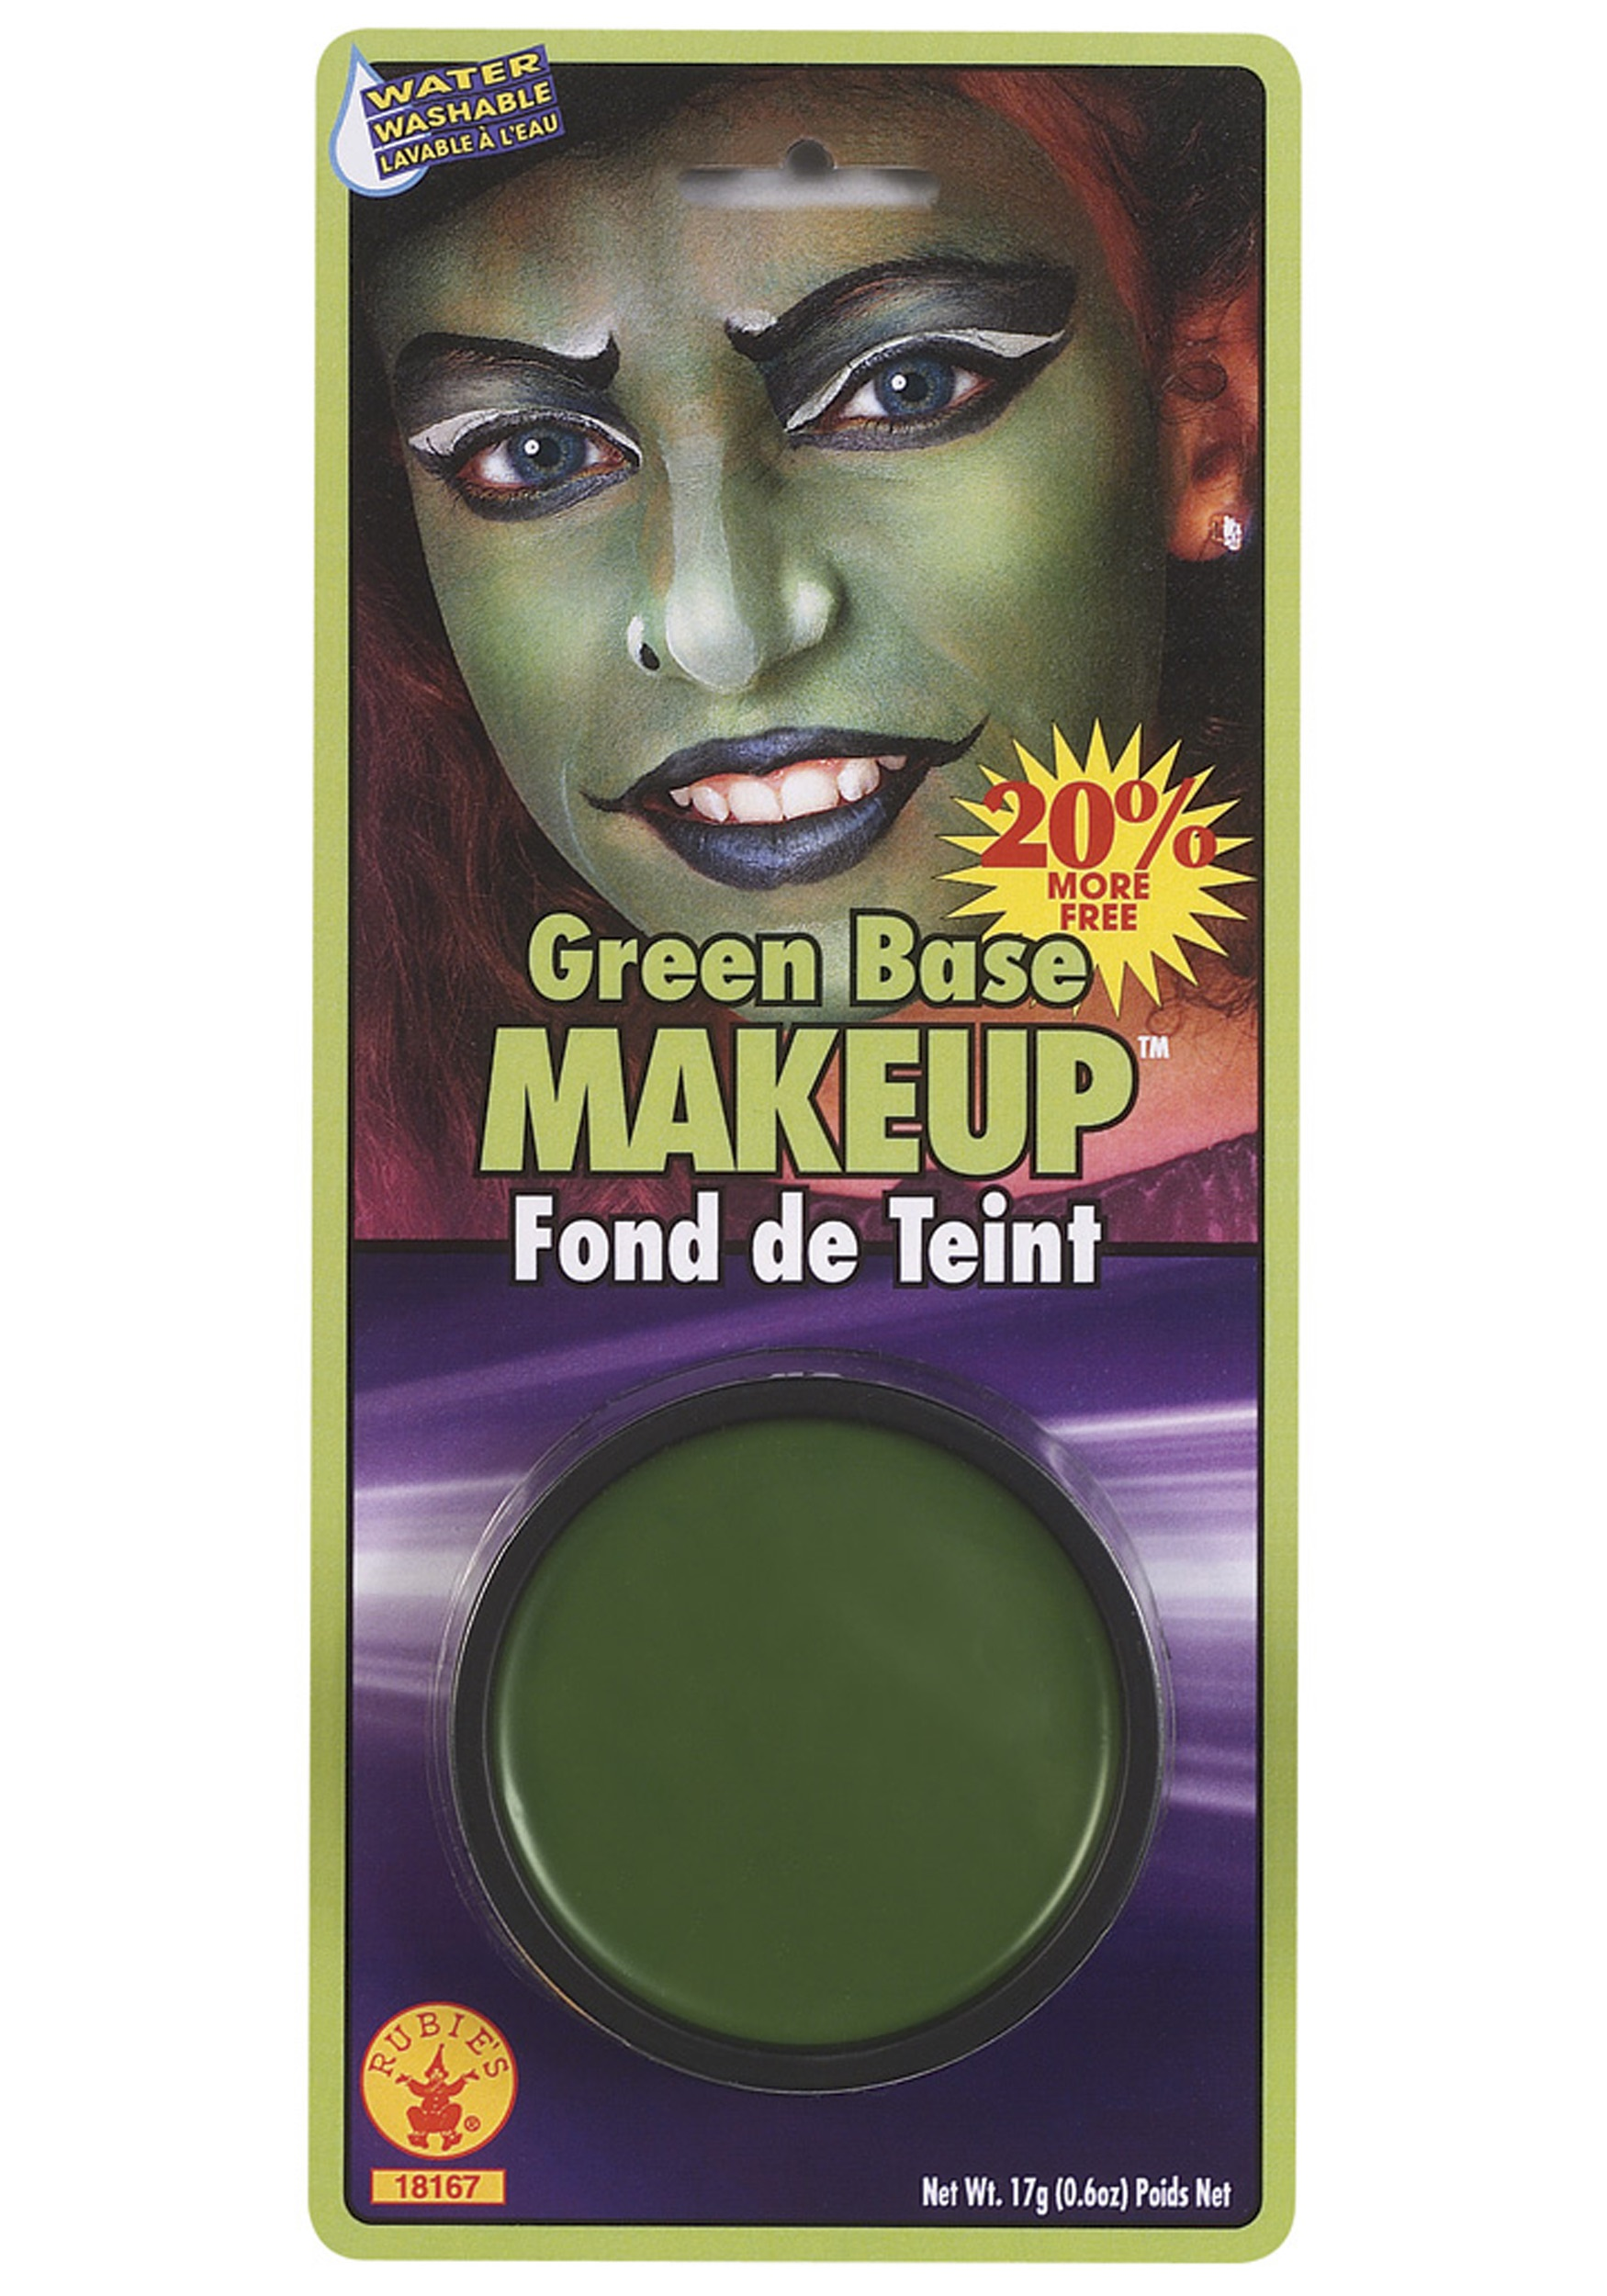 Makeup - Halloween Makeup, Costume Make Up Kits